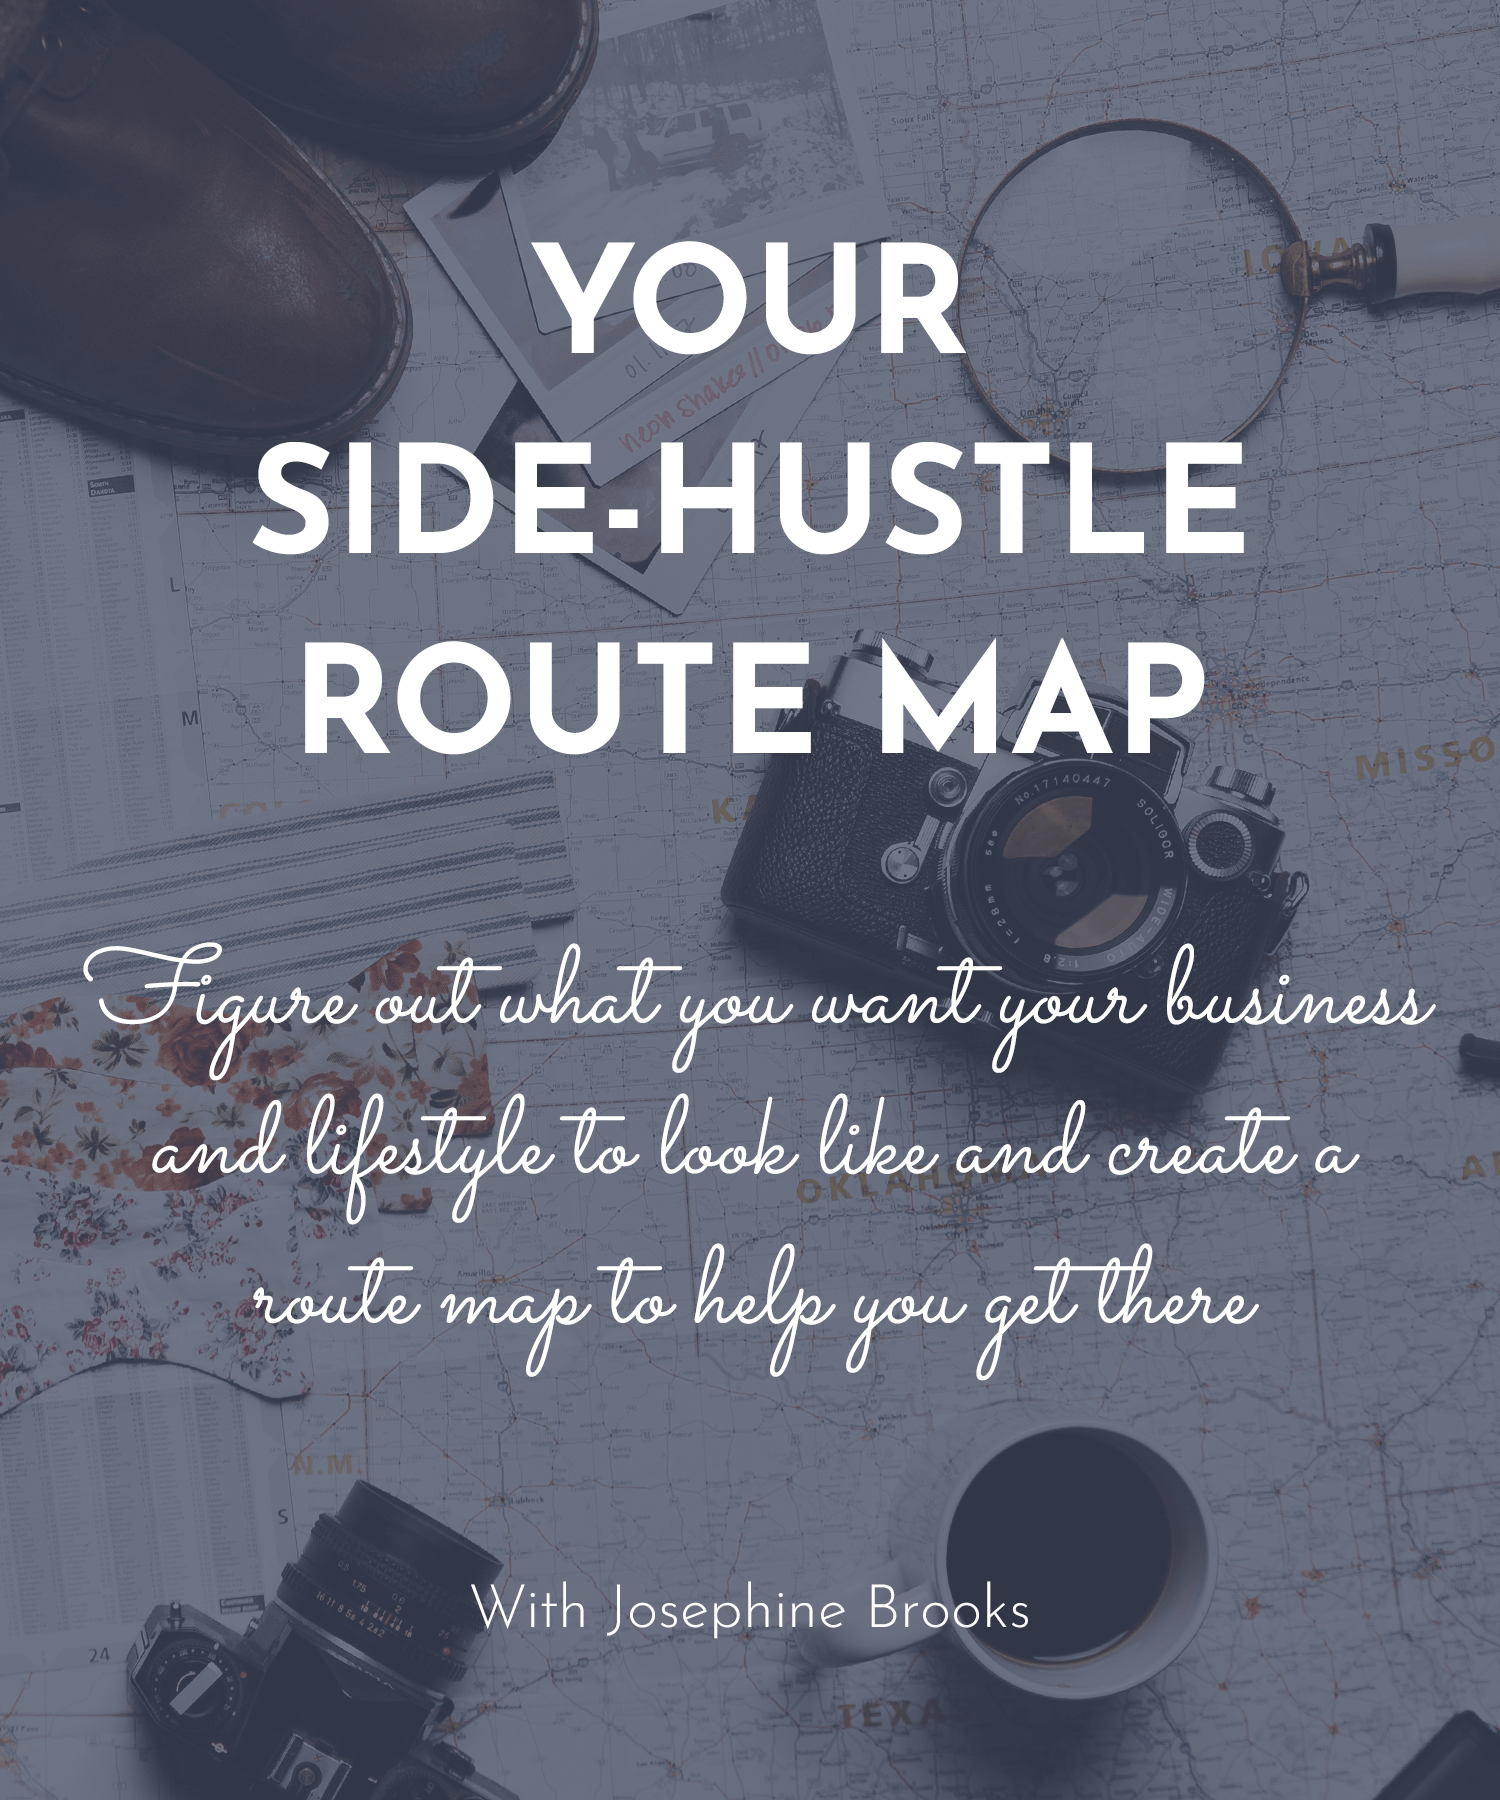 Your Side-Hustle Route Map, a day workshop with Josephine Brooks